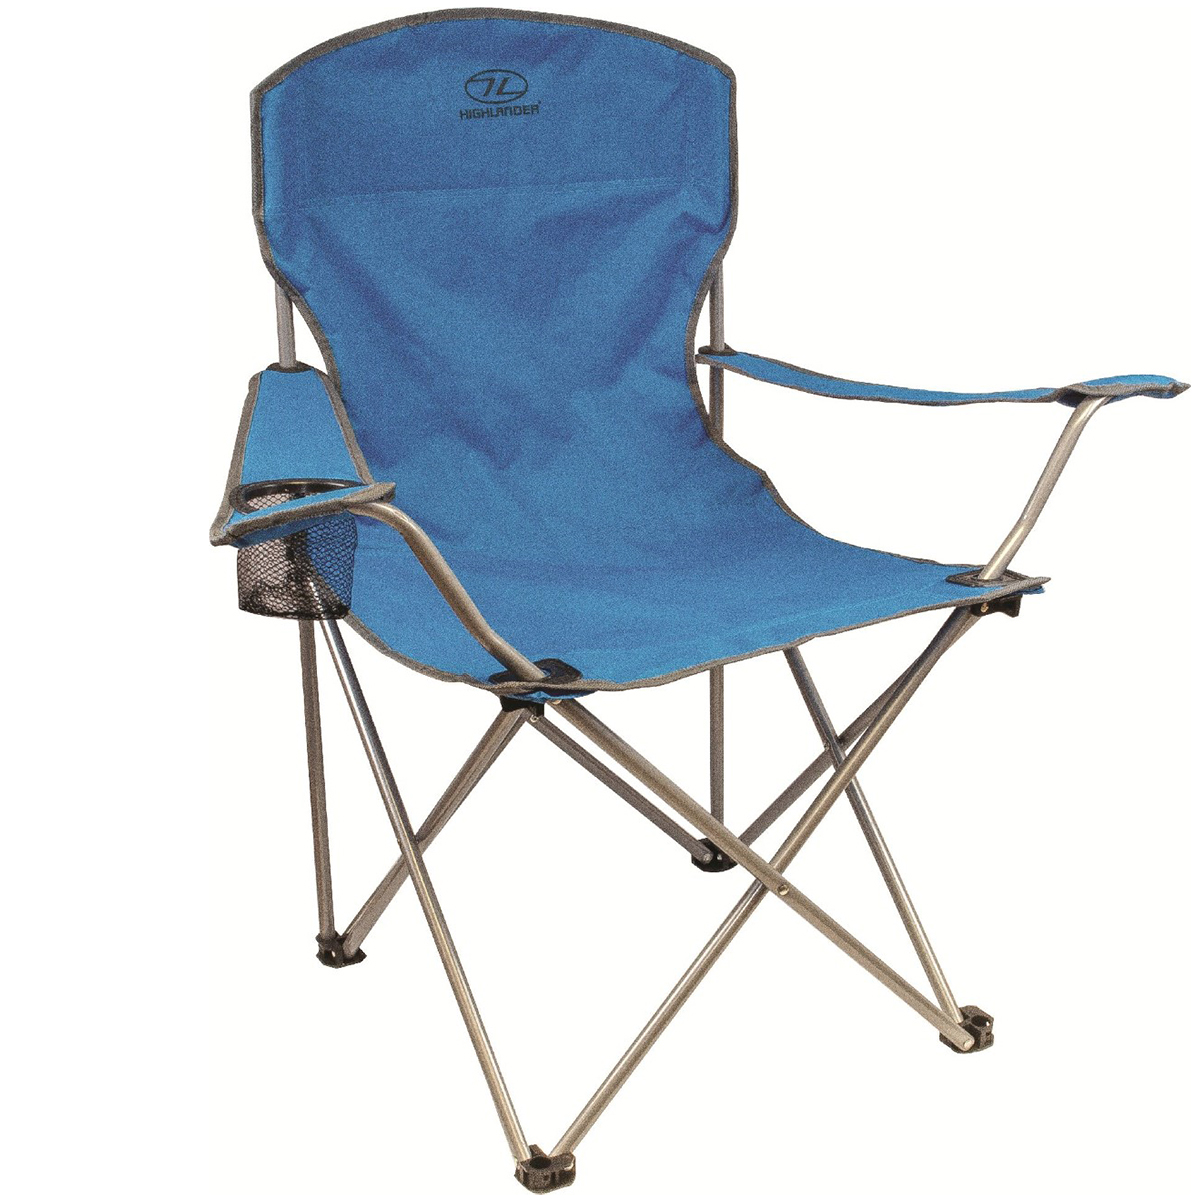 camp folding chairs black tufted chair highlander festival picnic sitting